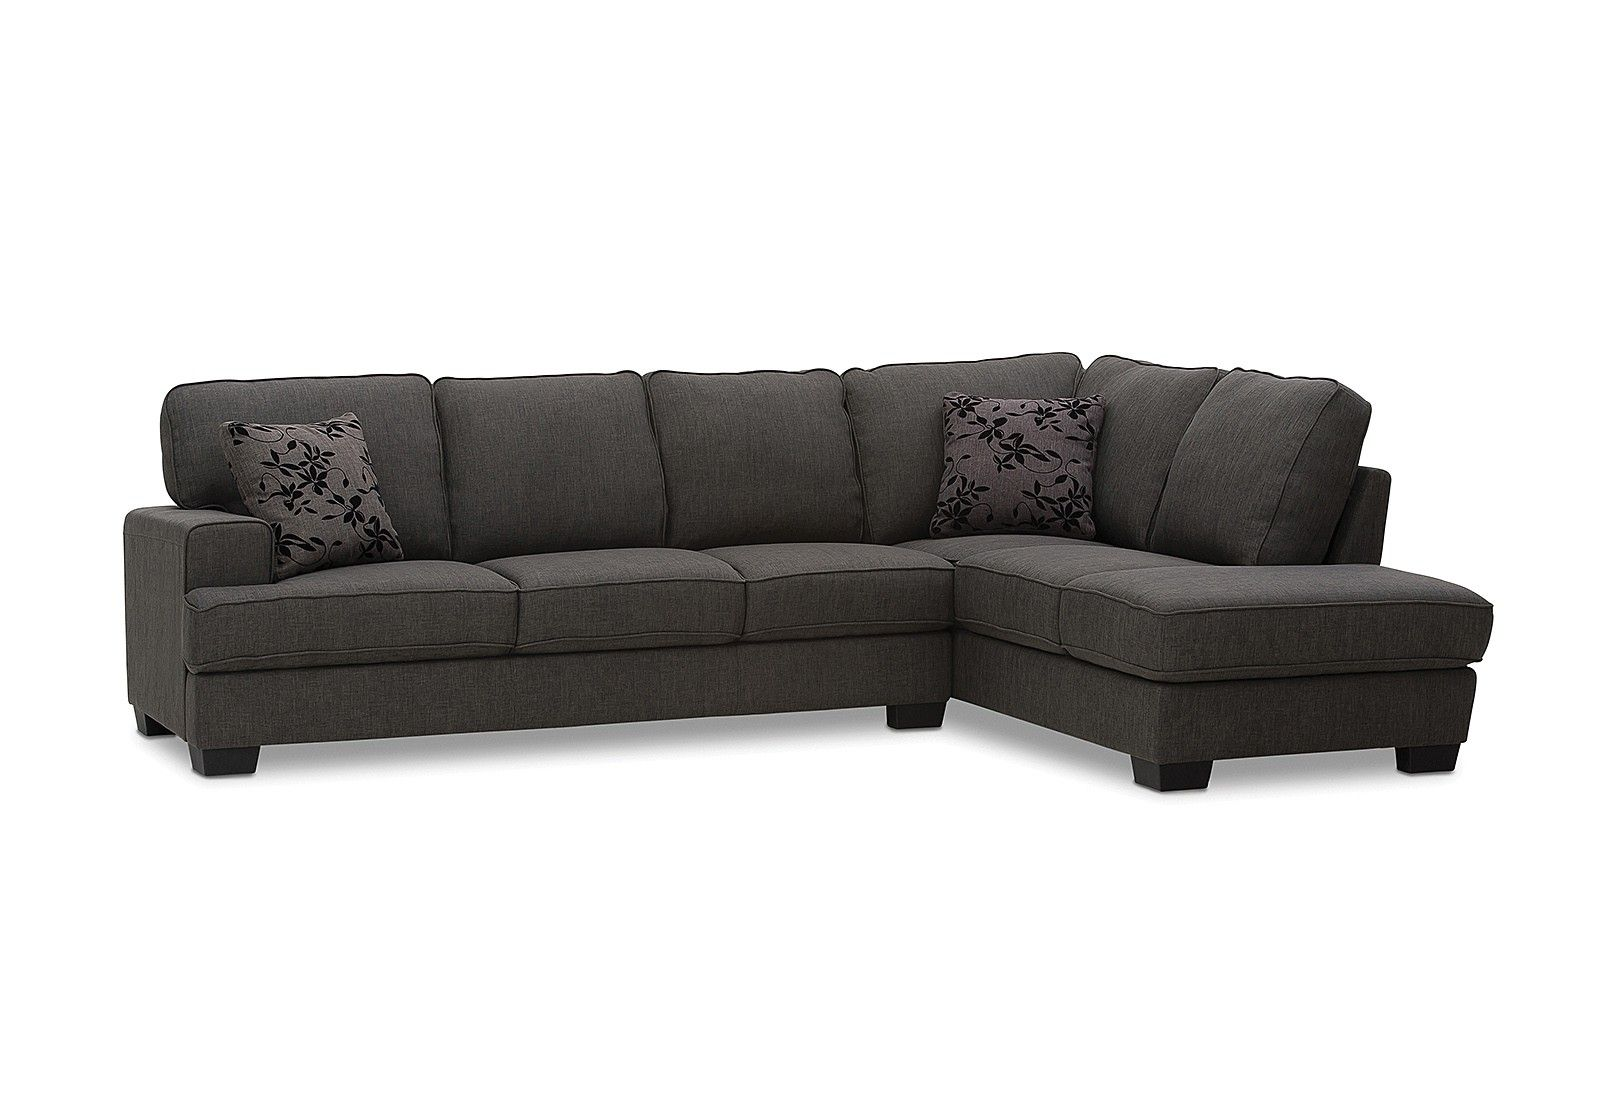 Lazytime plus sofa camerich - Camerich Lazytime Sofa Mcloughlin Pinterest Room Kitchen Sitting Rooms And House